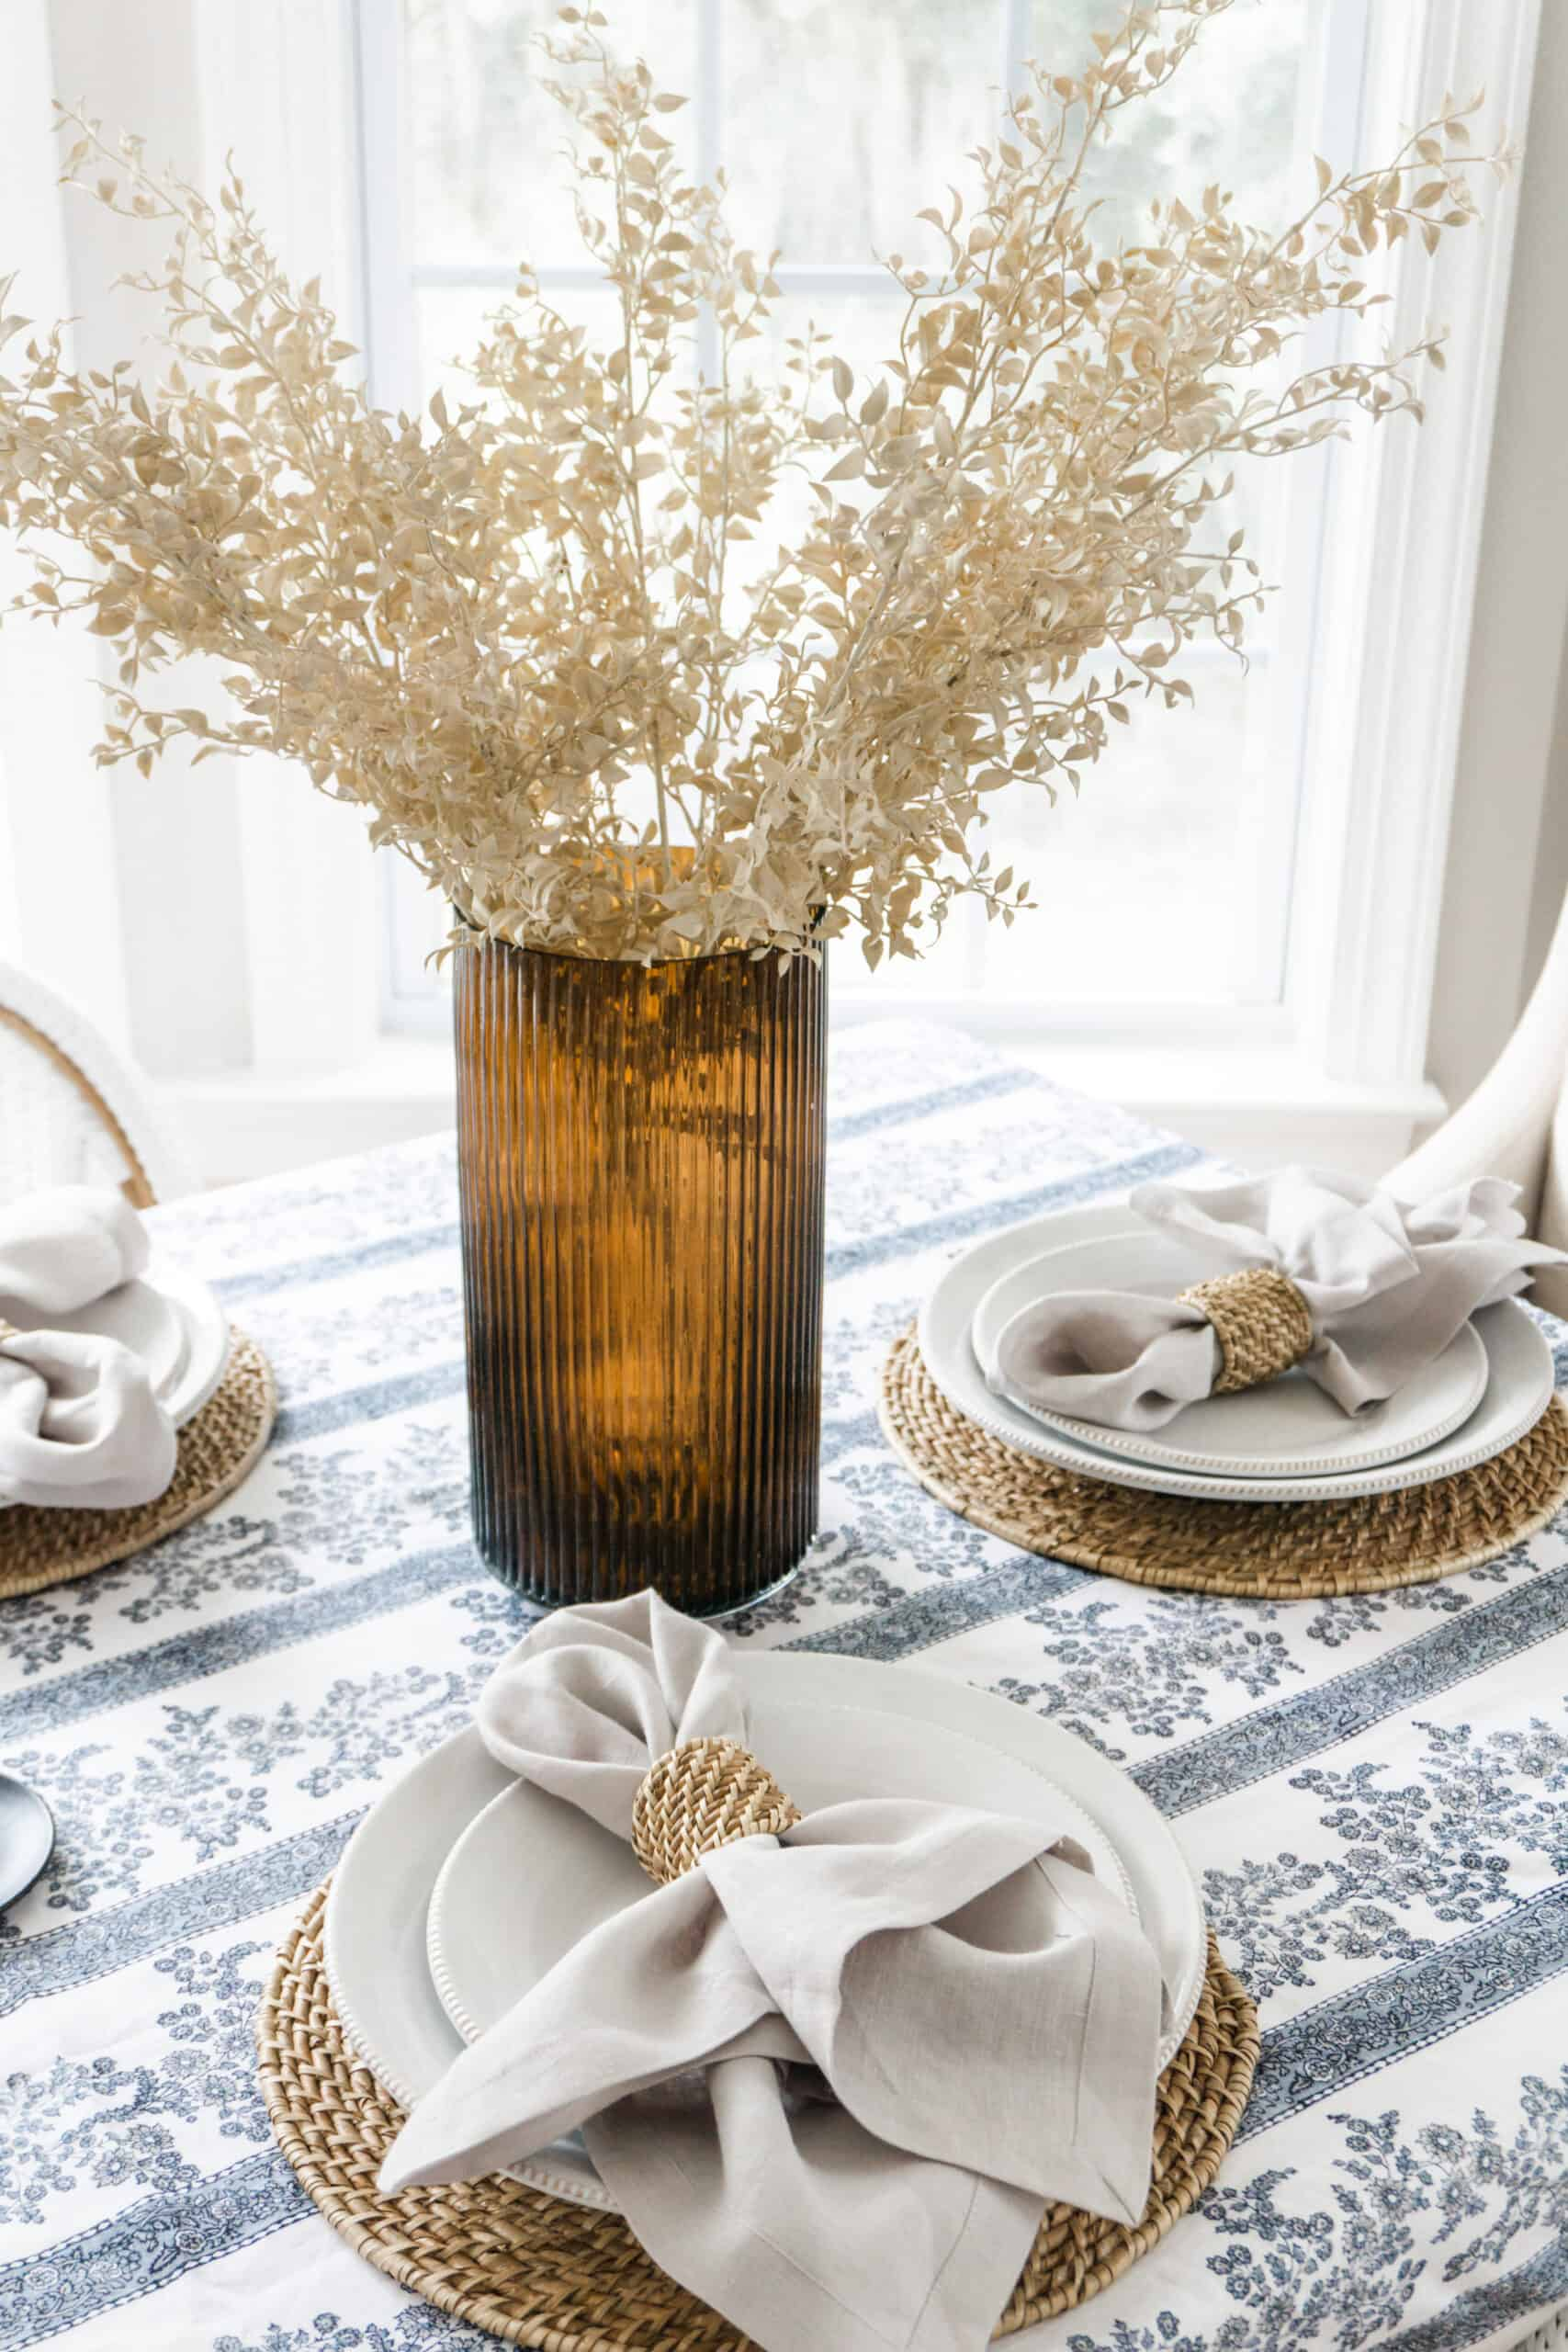 Natural stems placed in an amber vase as a centerpiece.